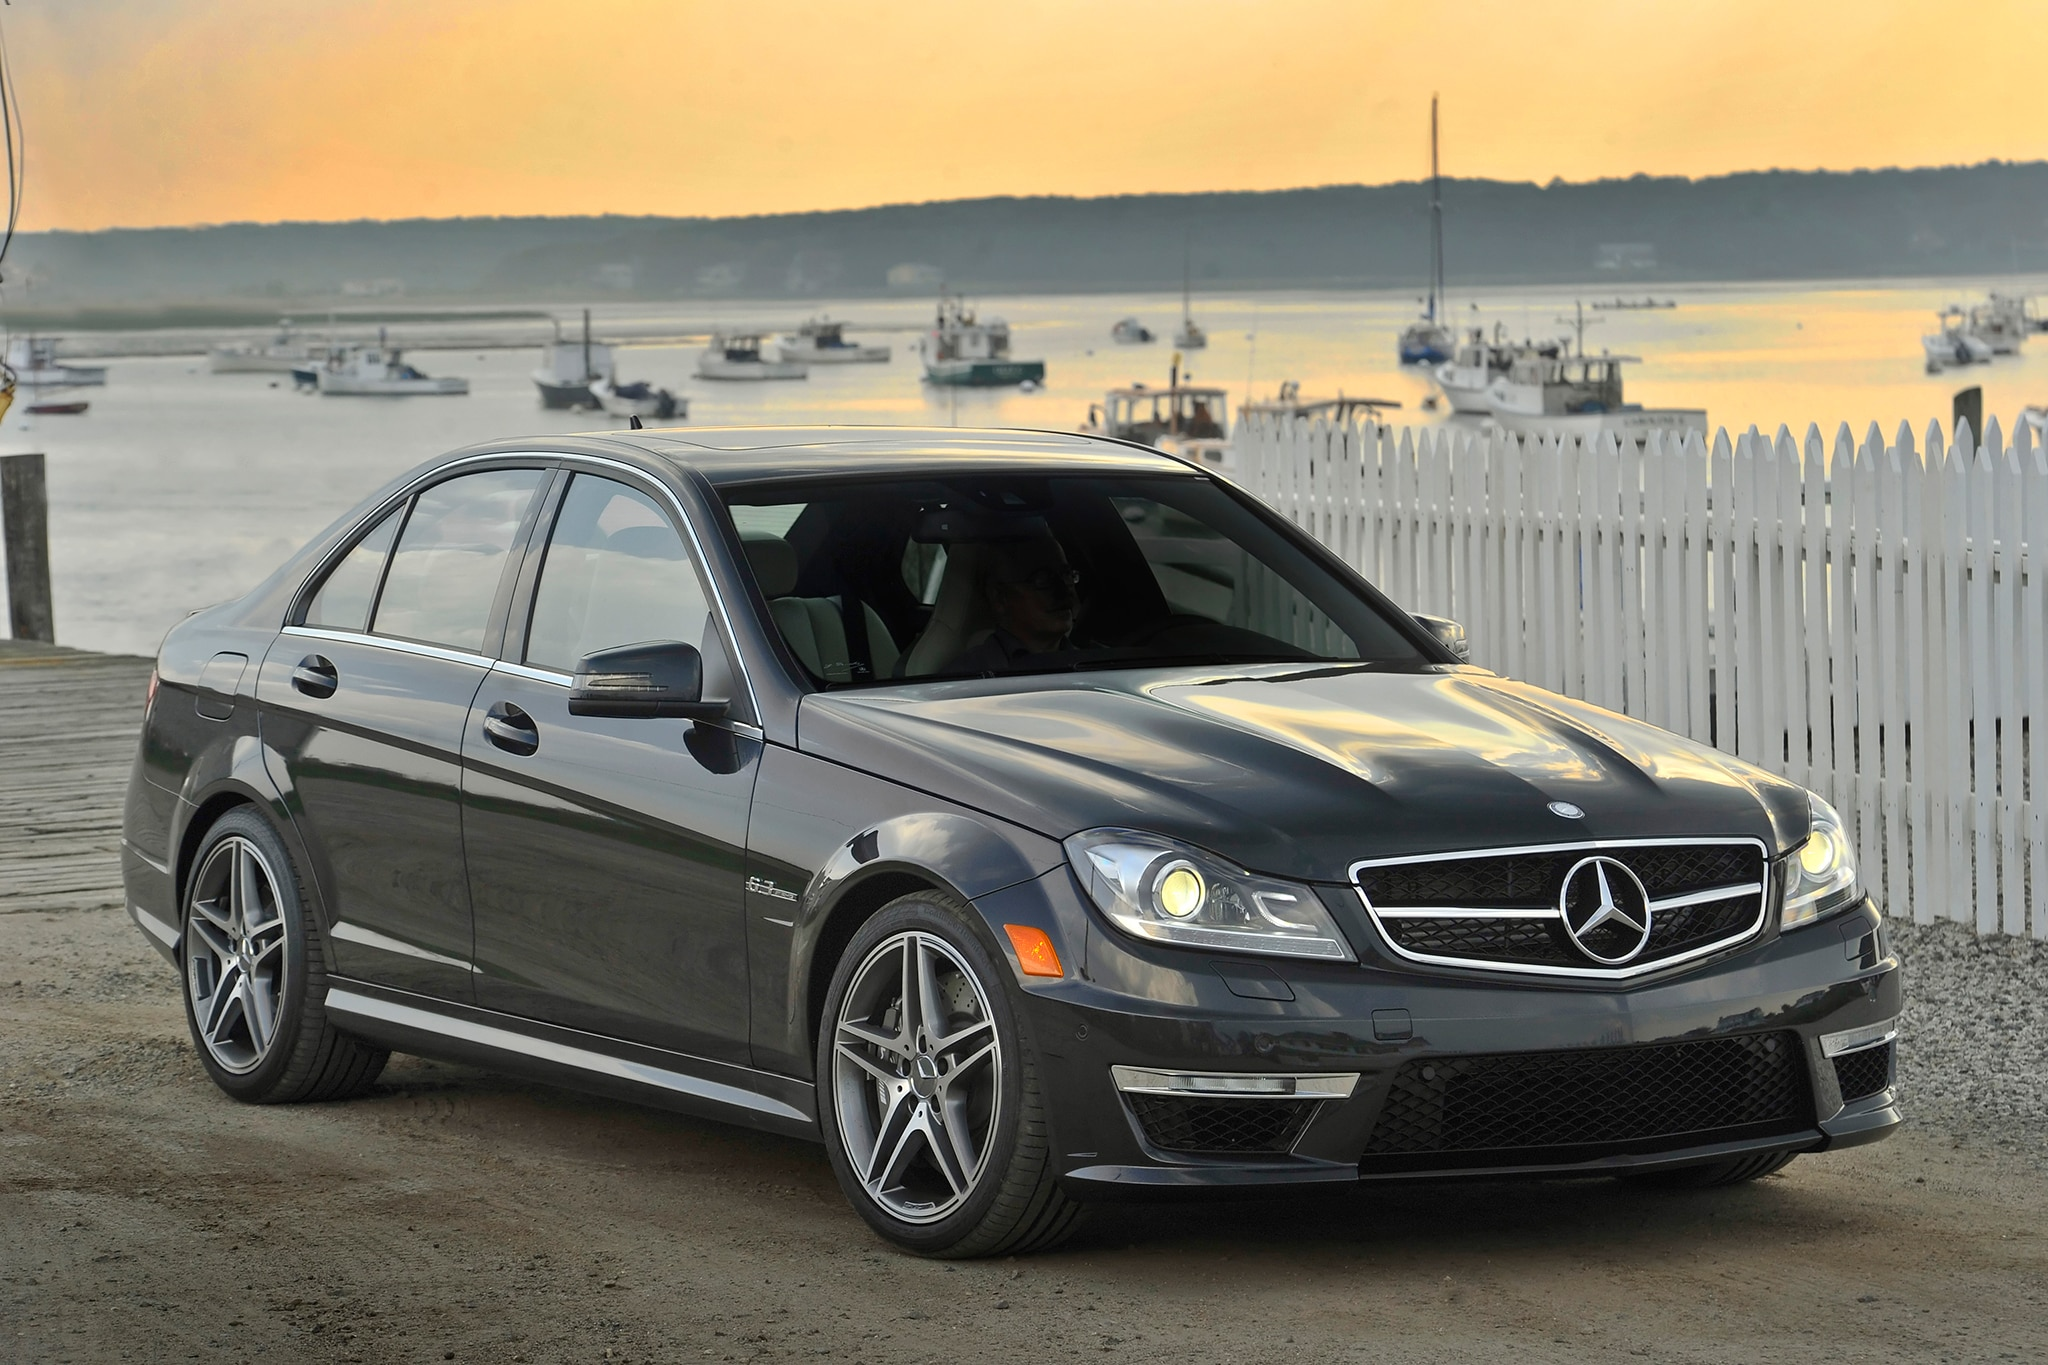 2013 14 mercedes benz c300 4matic fuel economy revised by epa for Mercedes benz 300 amg